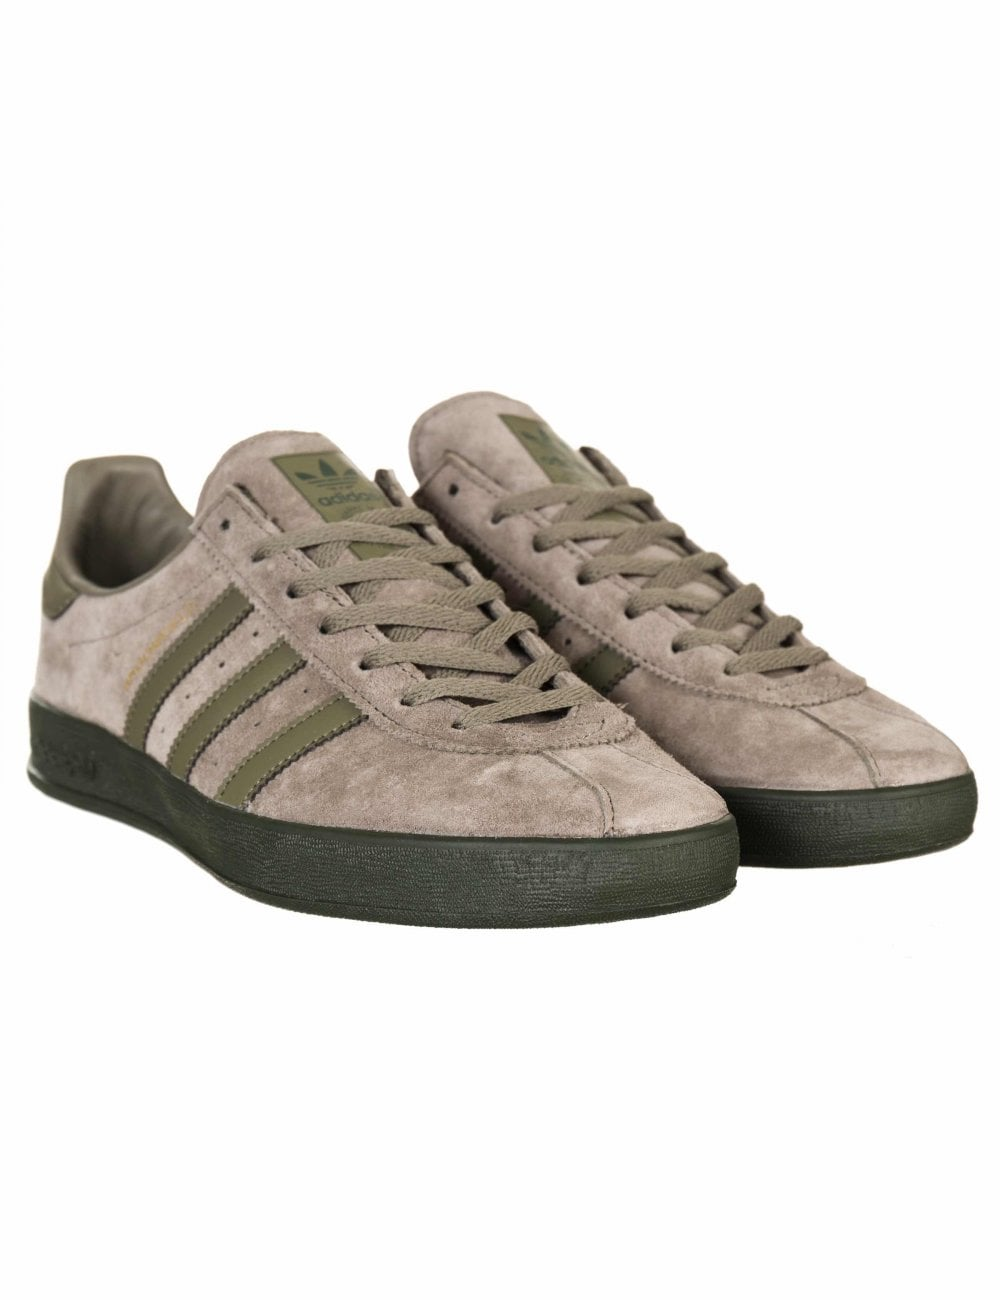 sneakers for cheap 4ccf7 972d2 Adidas Originals Broomfield Trainers - Trace Cargo